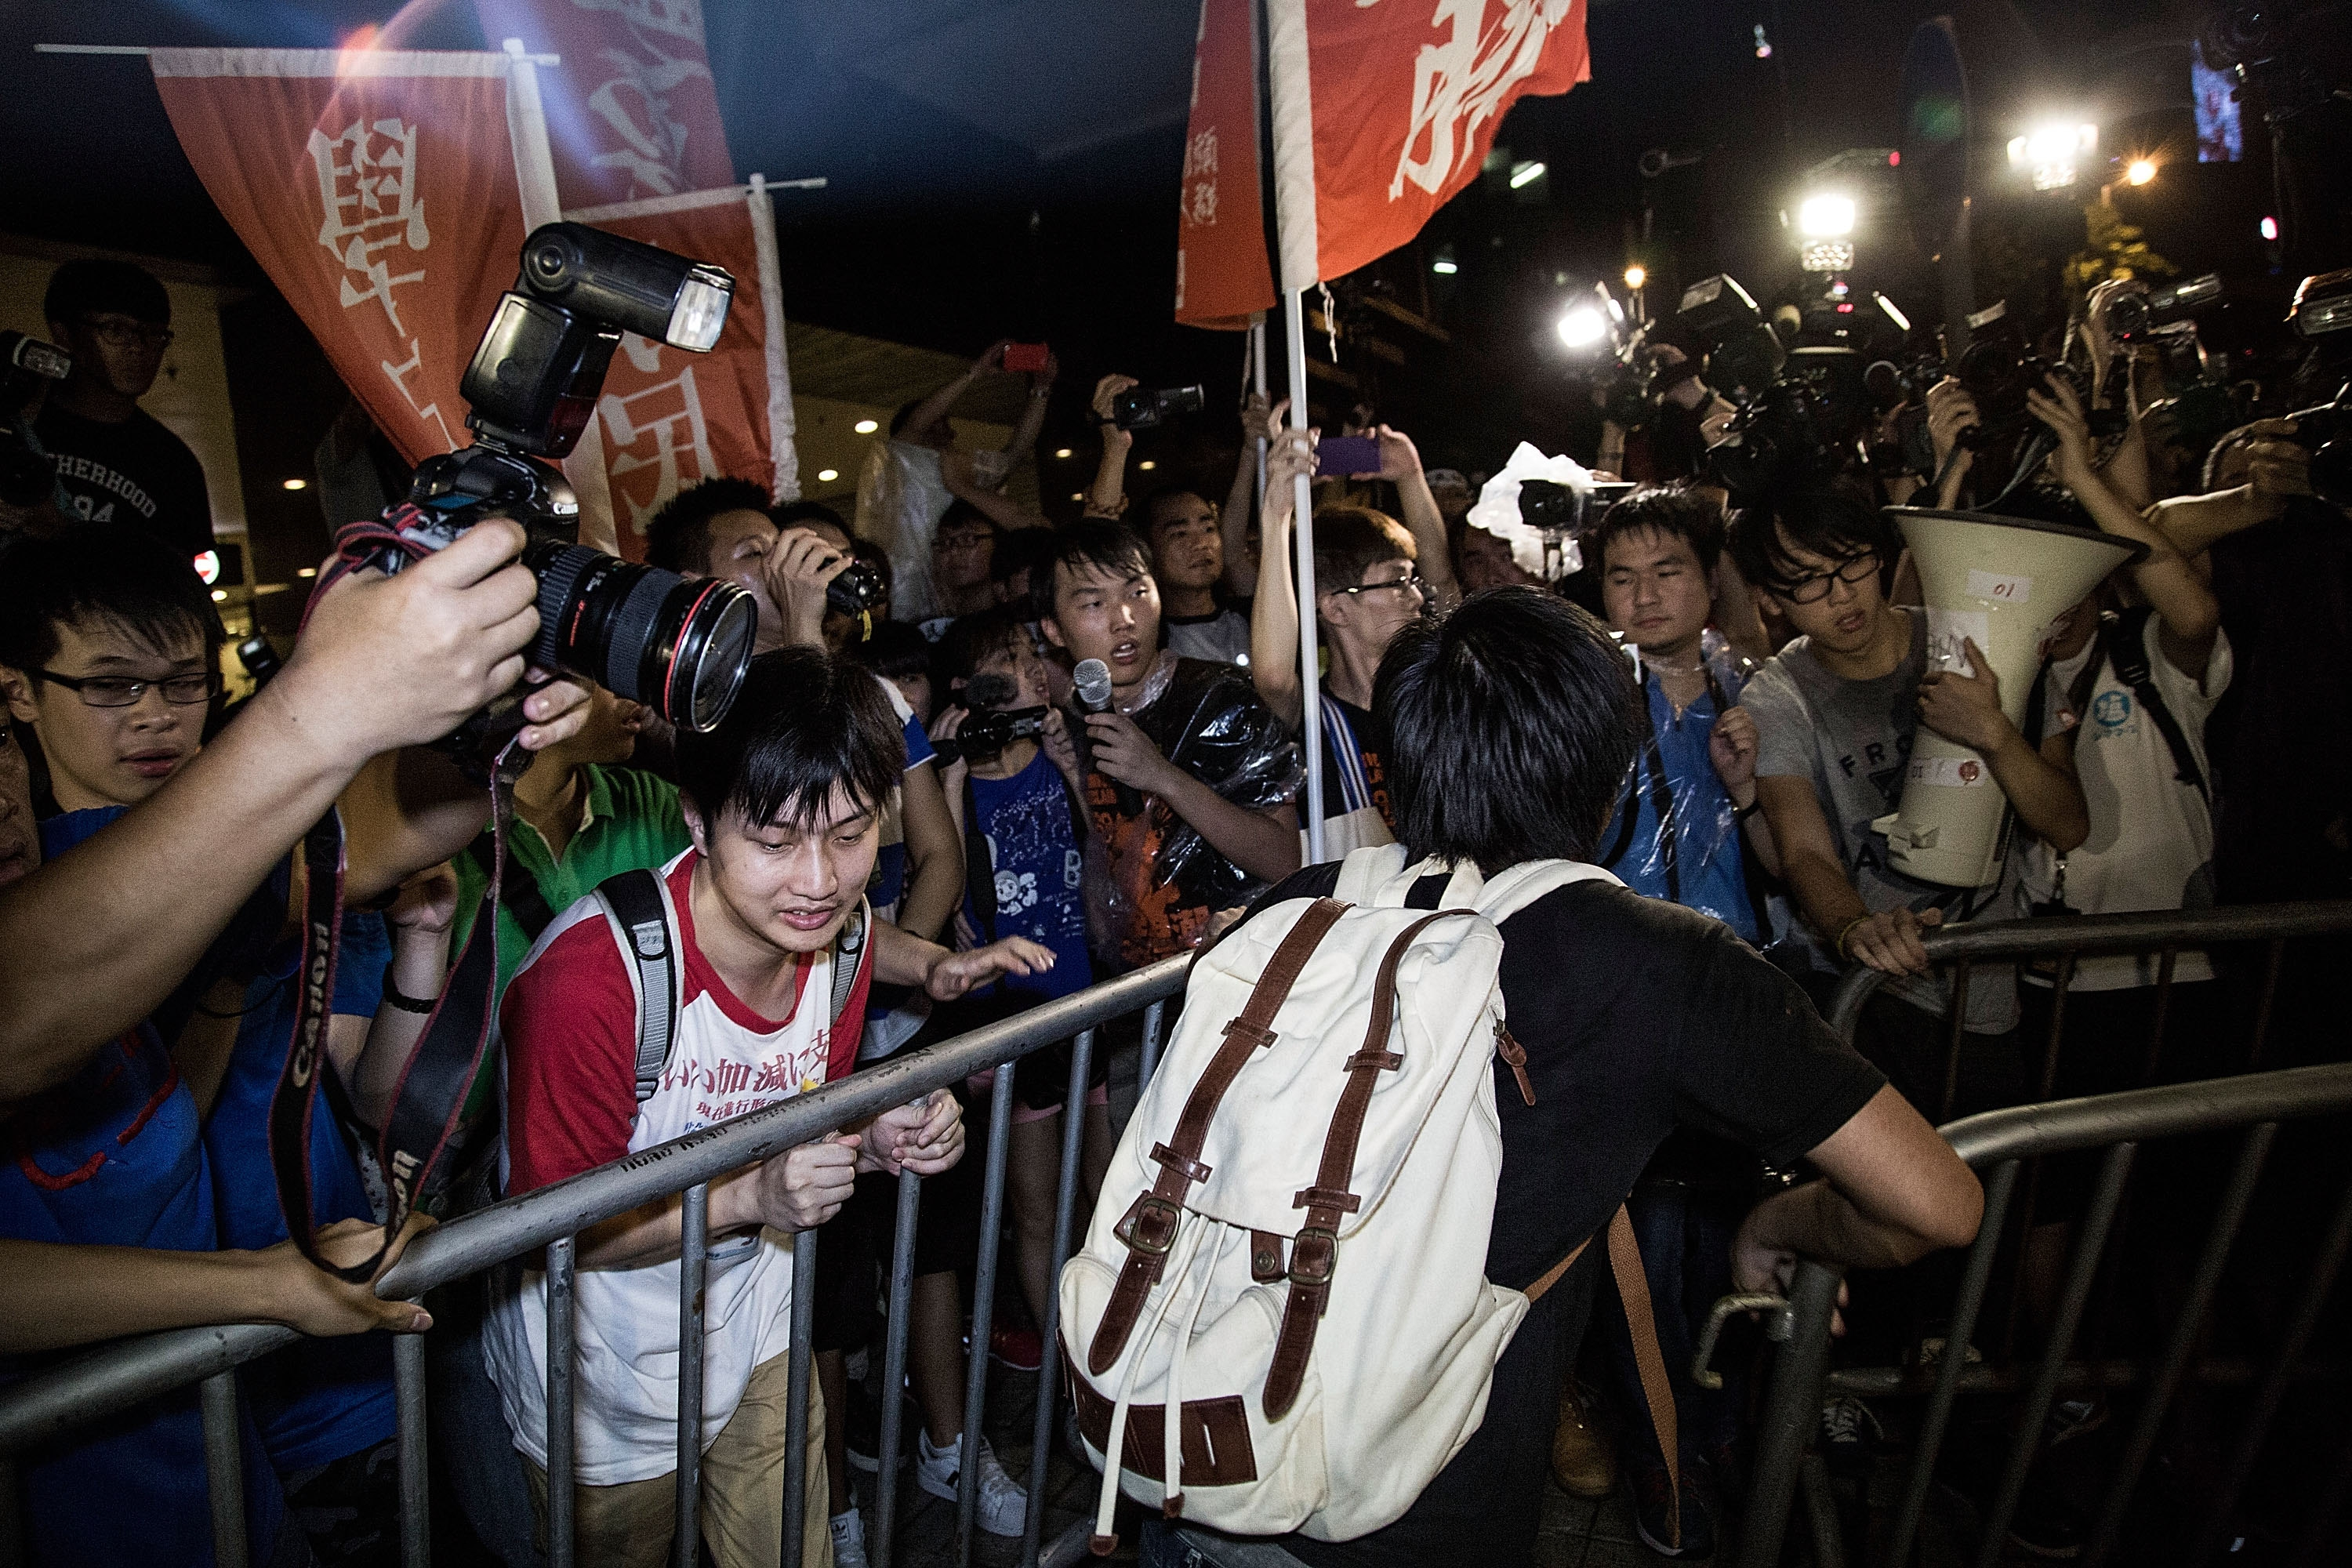 Occupy Central protesters confront police Sunday in Hong Kong. The National People's Congress Standing Committee endorsed an unpopular framework for political reform.